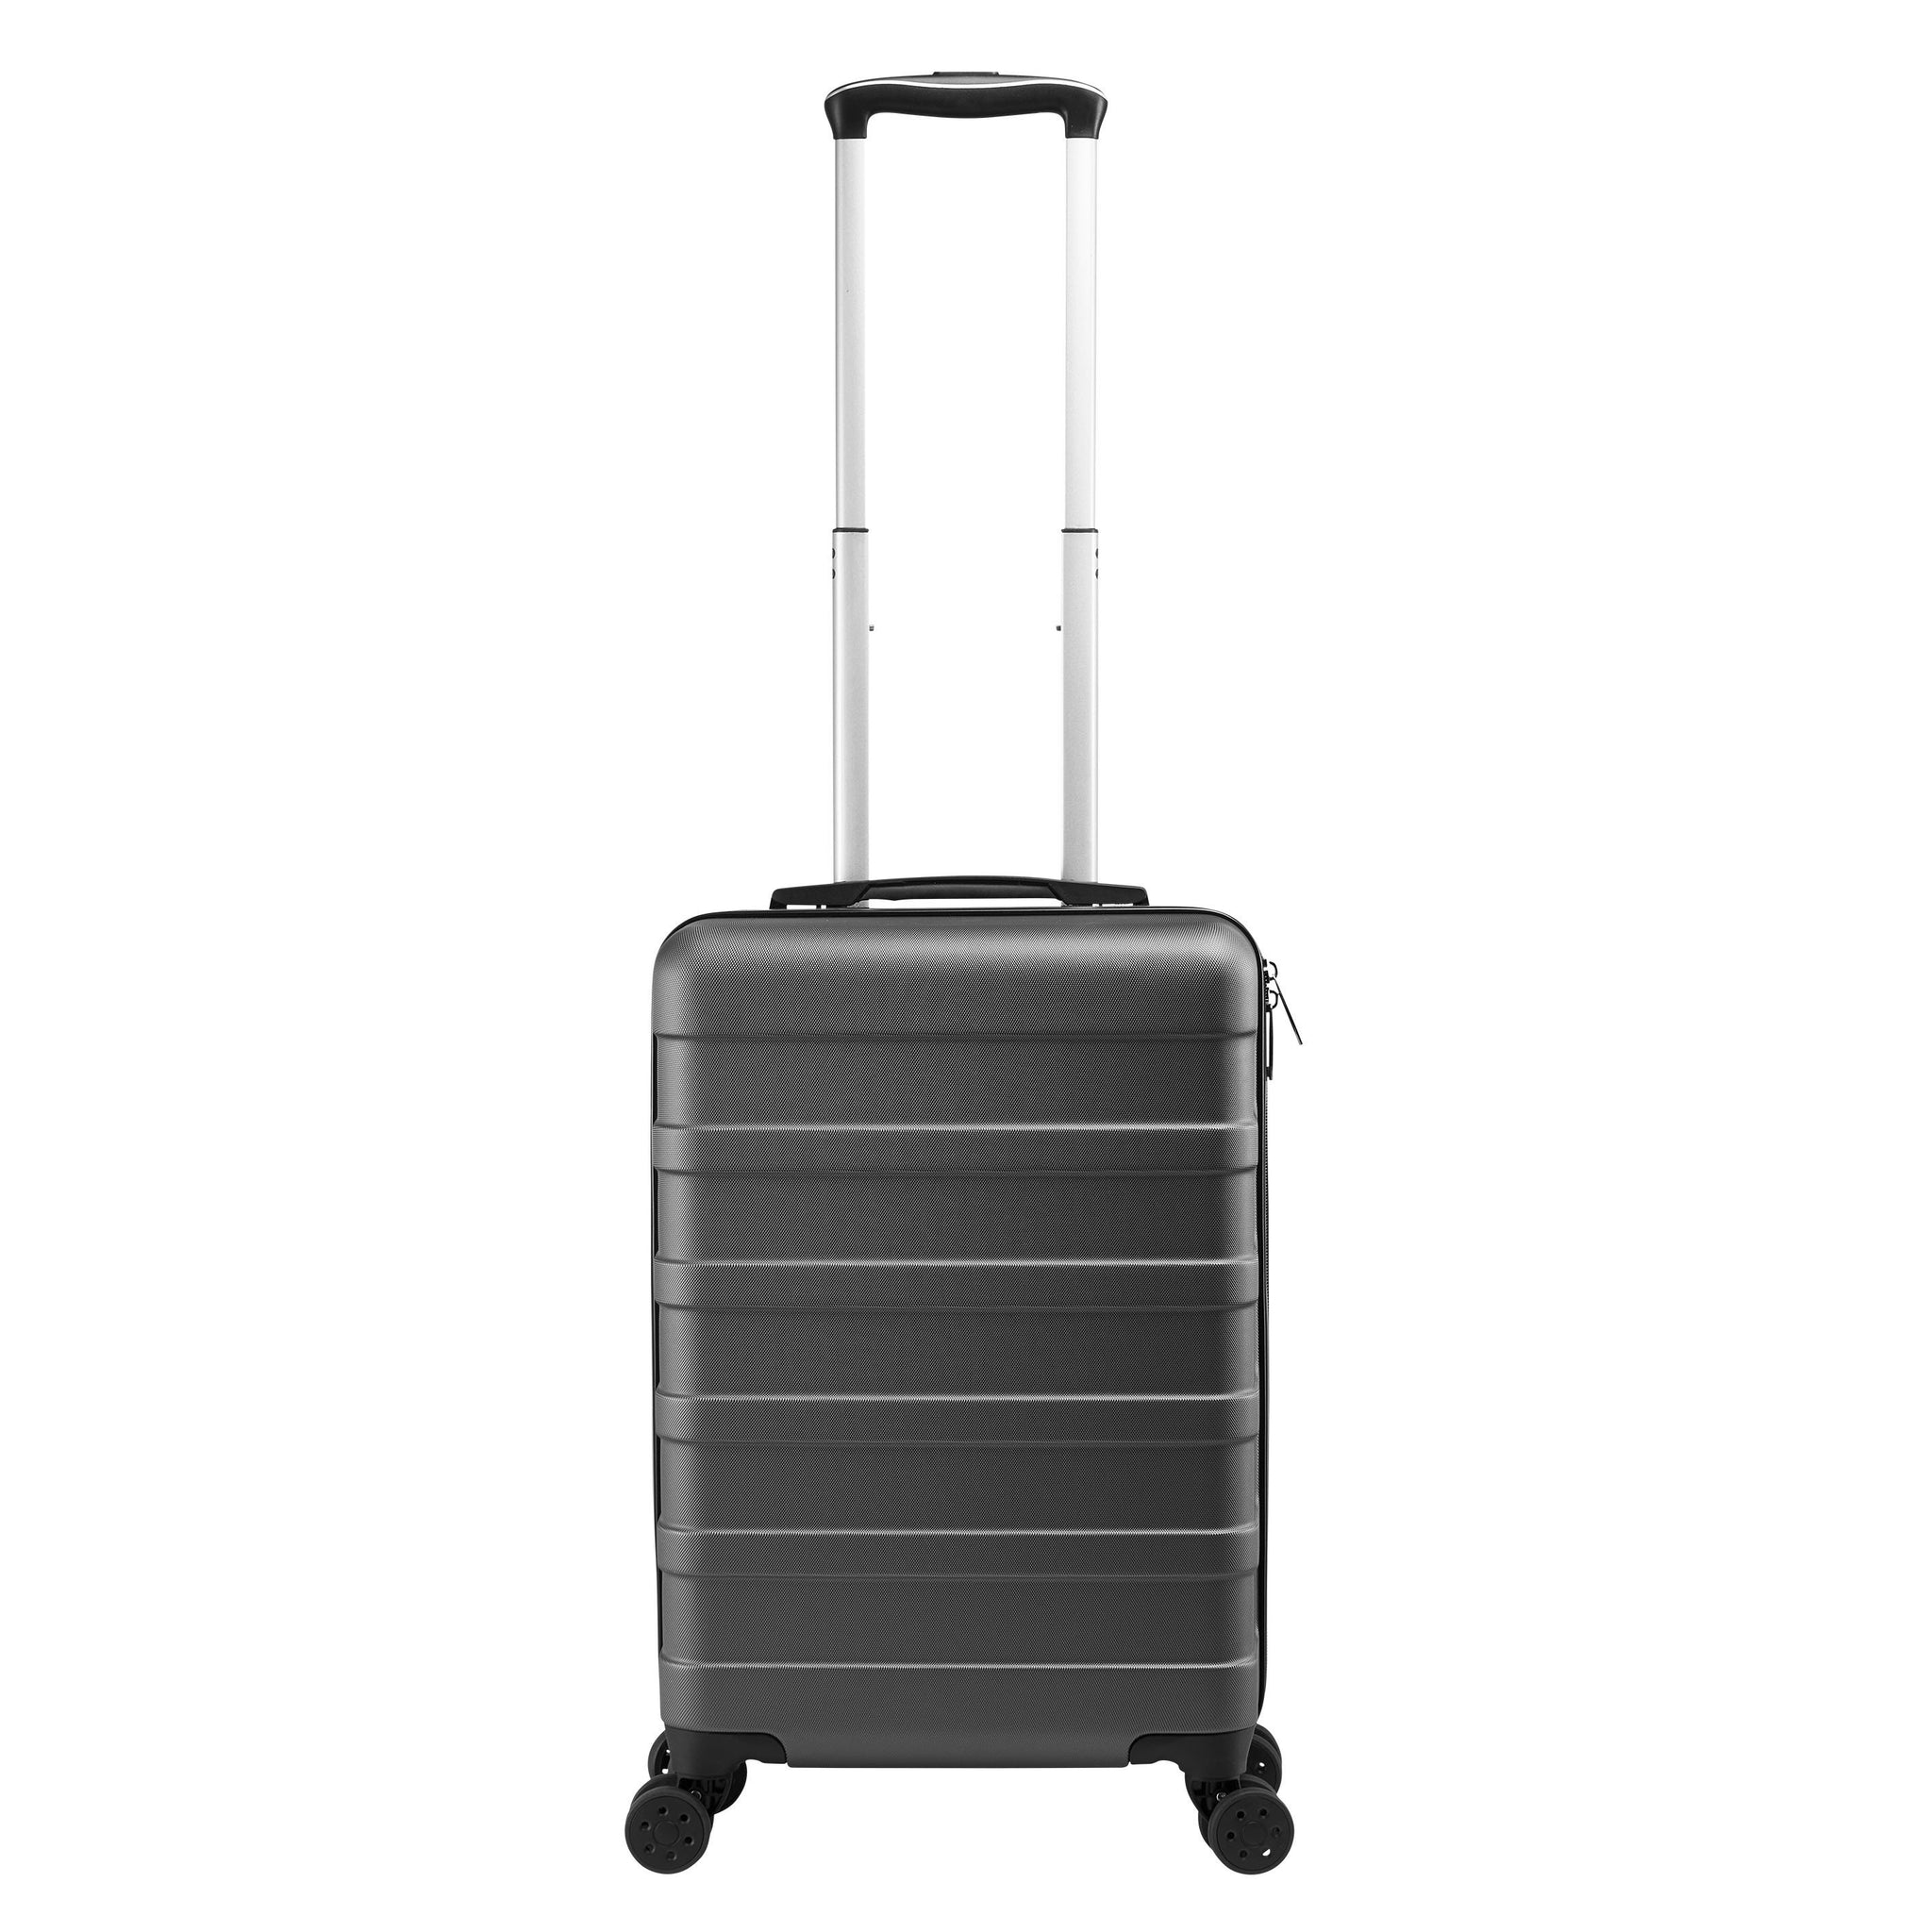 Anode Cabin Suitcase With Integrated USB Charger Port - Cabin Max